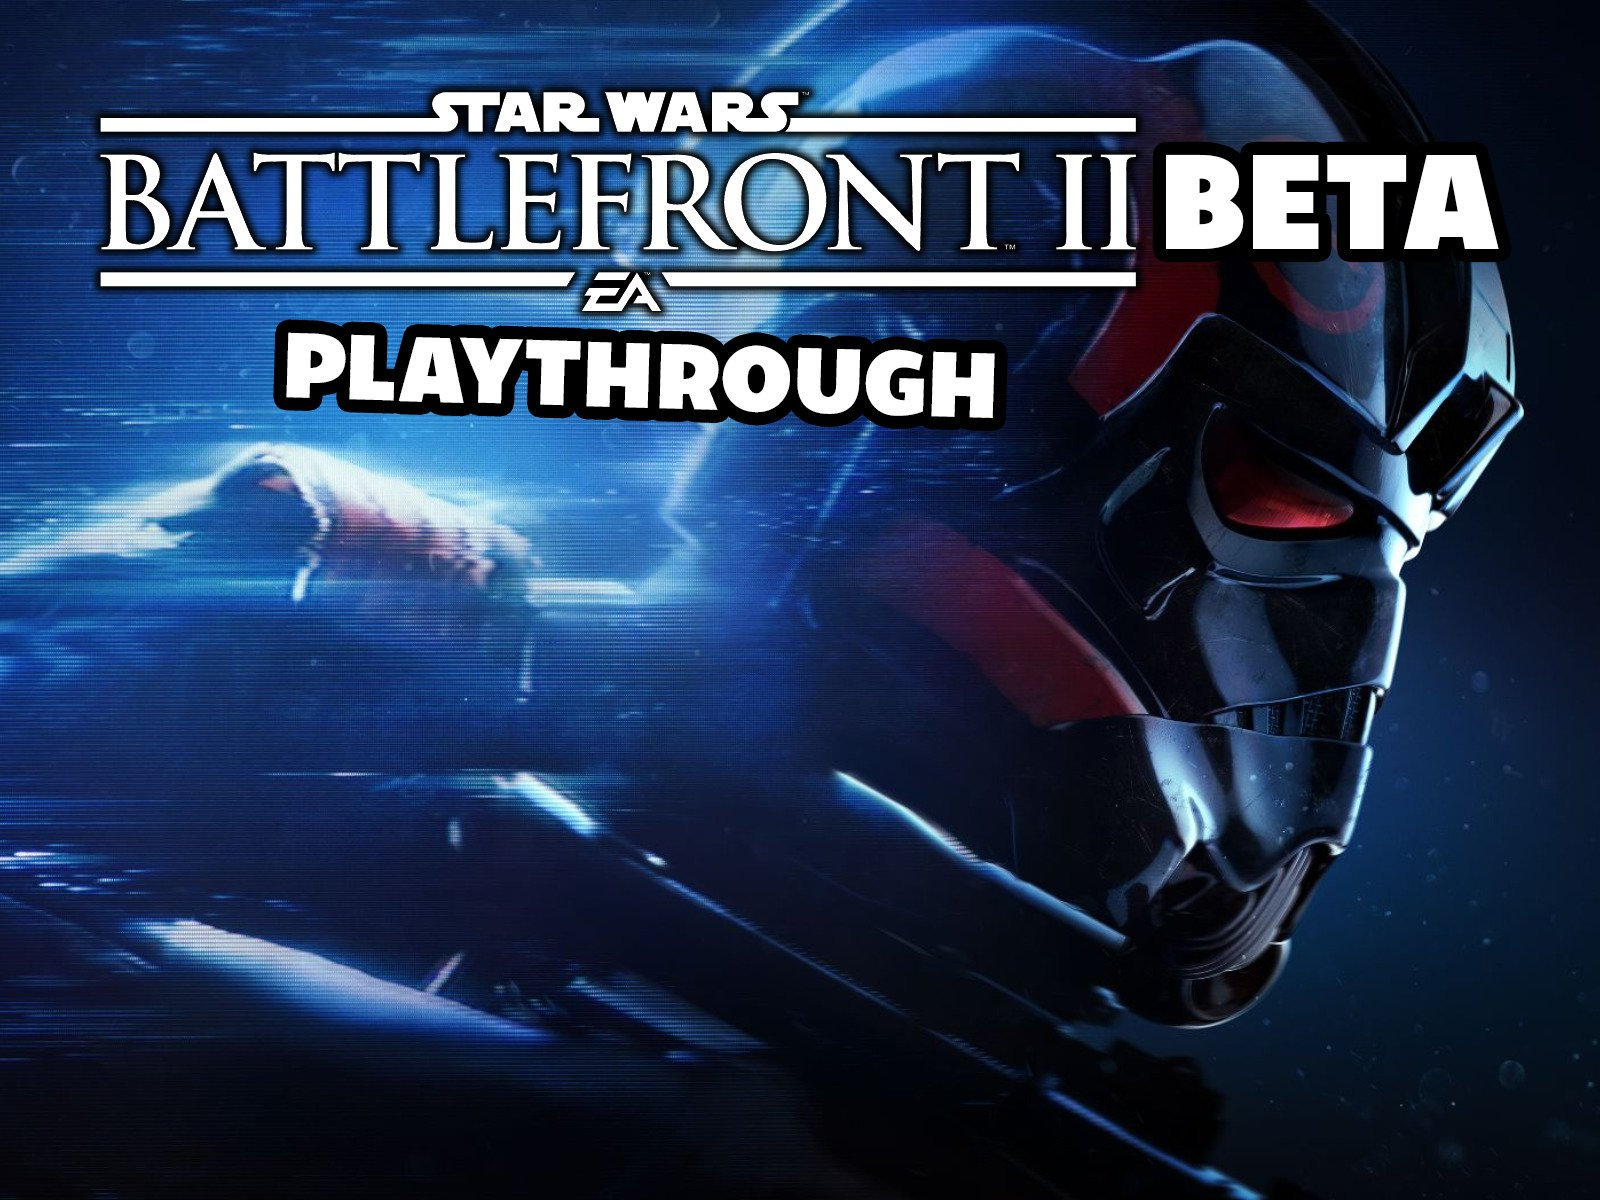 Clip: Star Wars Battlefront 2 Beta Playthrough - Season 1